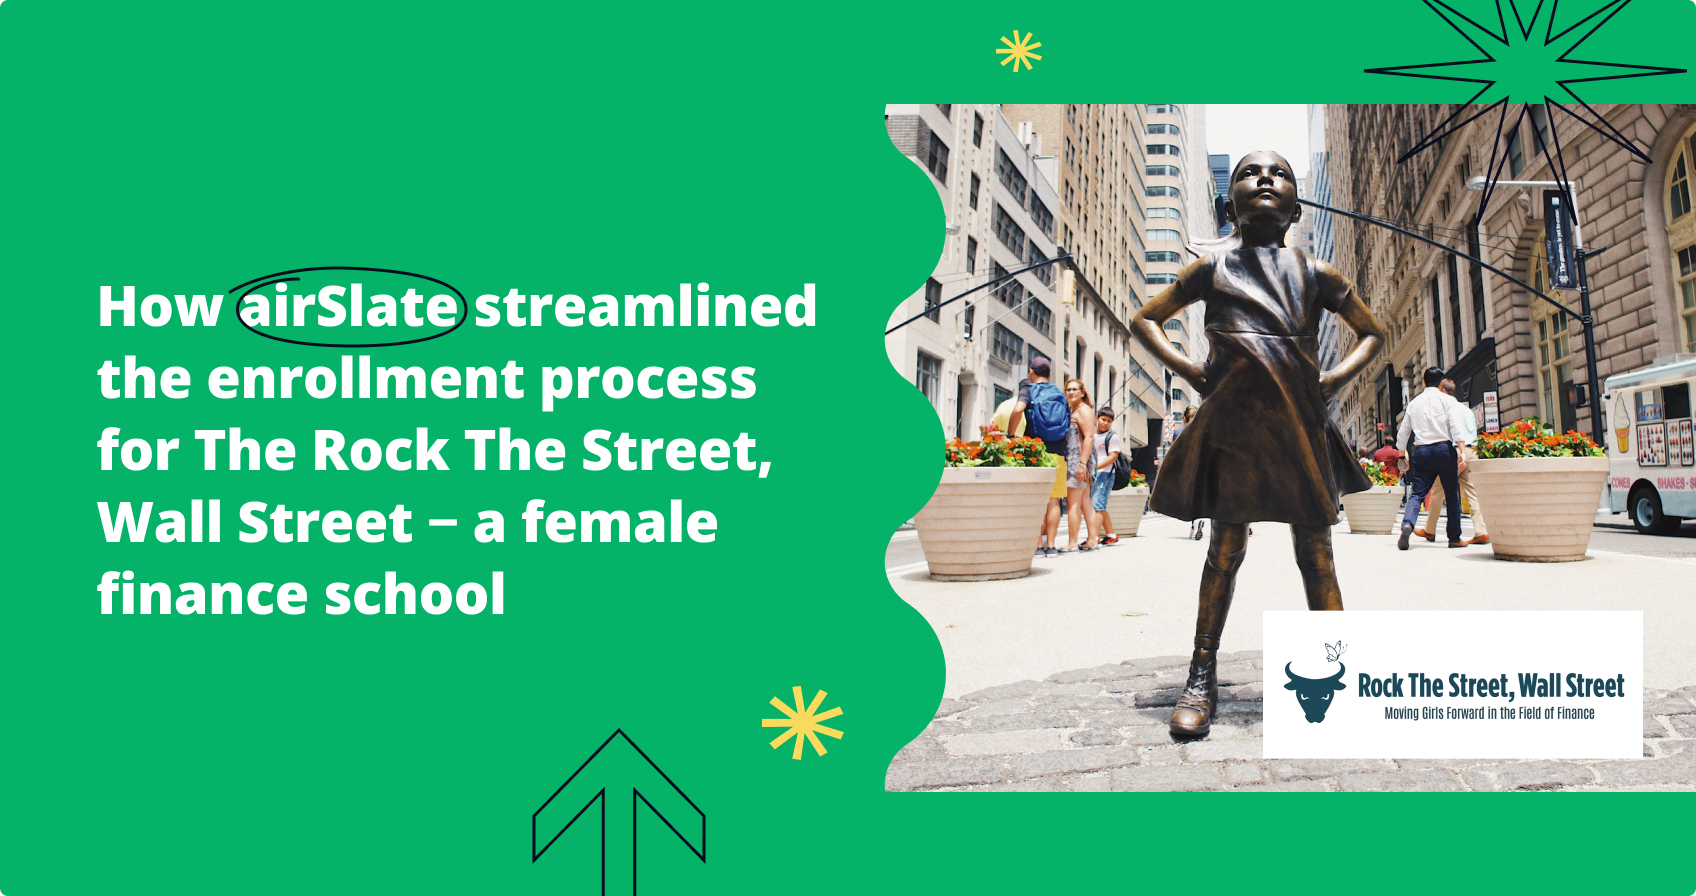 How a female finance school uses airSlate to enroll more students